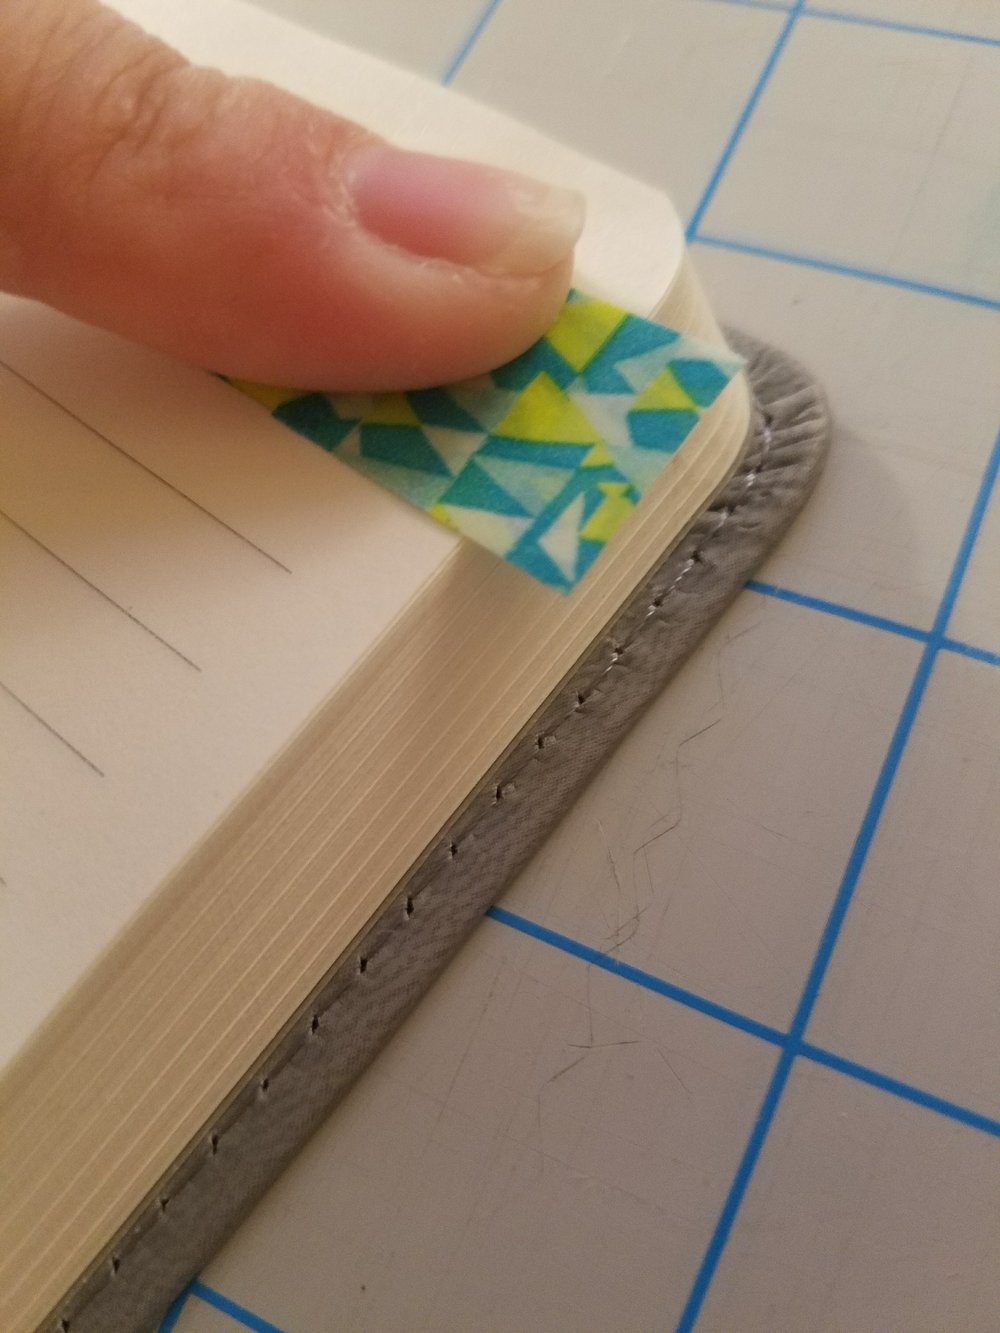 "Take a piece of Washi tape approximately 1.5"" long and fold about a 1/3 of it in half so that it sticks to itself. Then take the remaining sticky part and attach to the page."